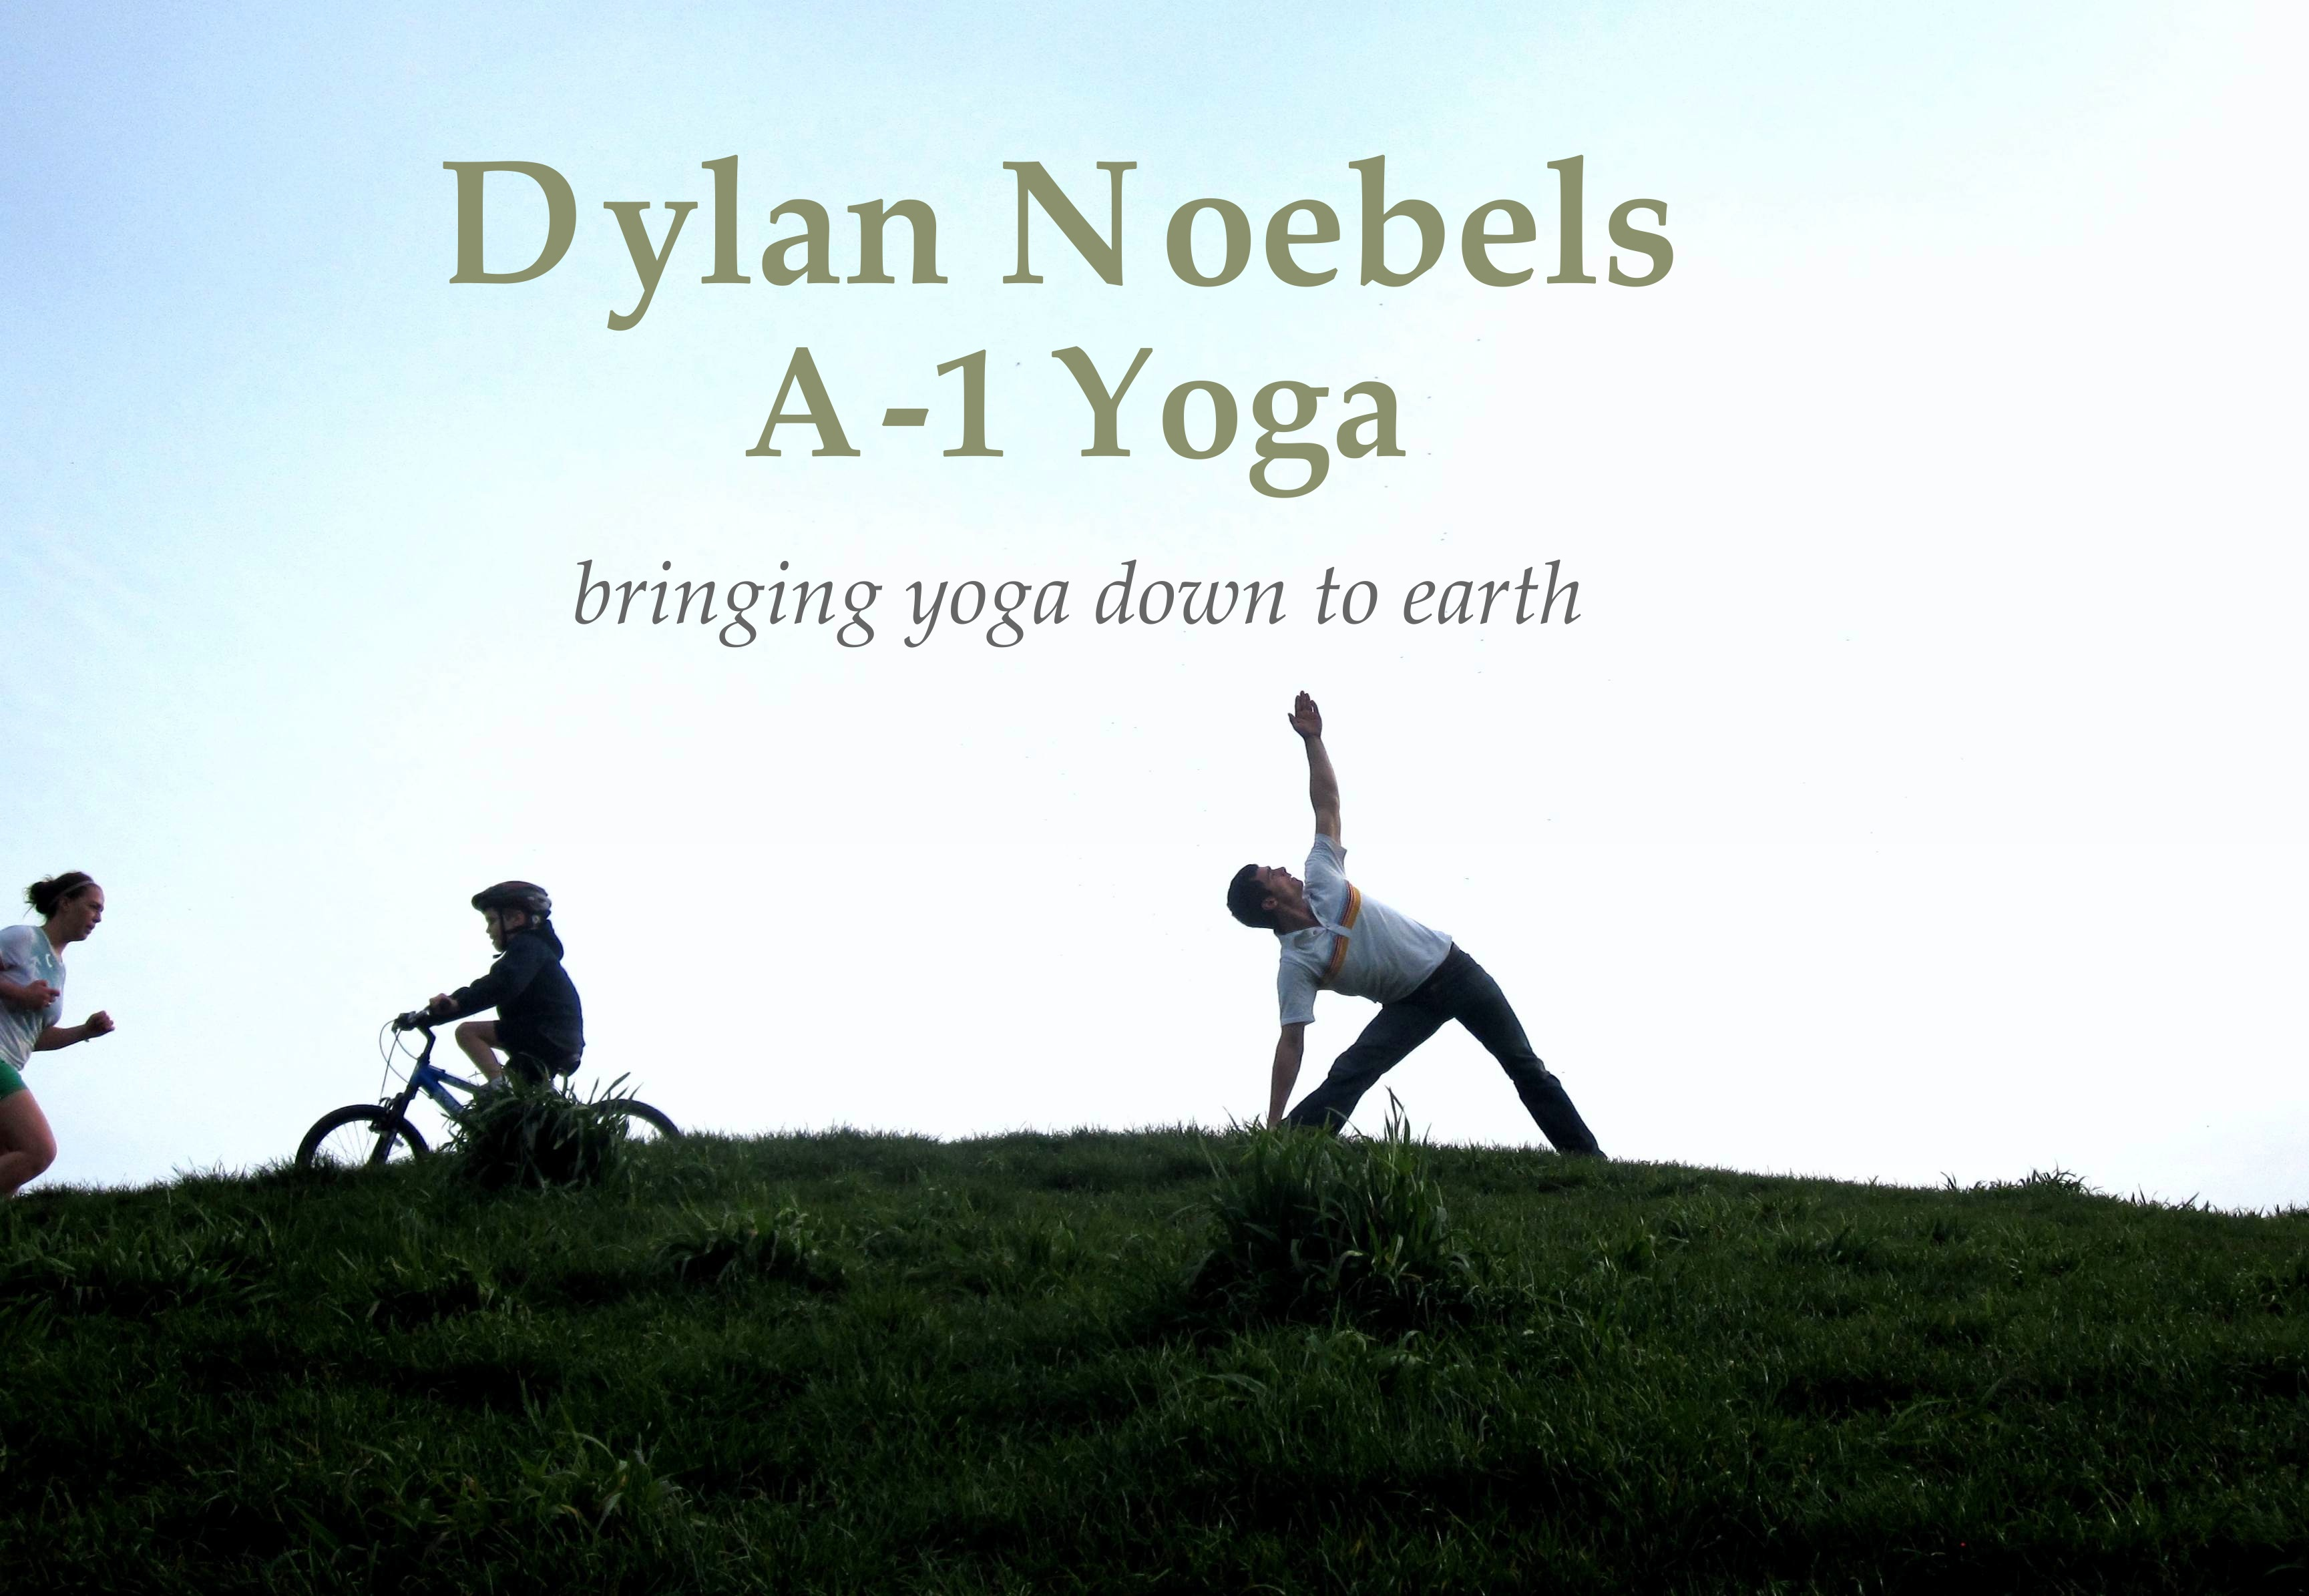 Dylan Noebels A-1 Yoga Seattle